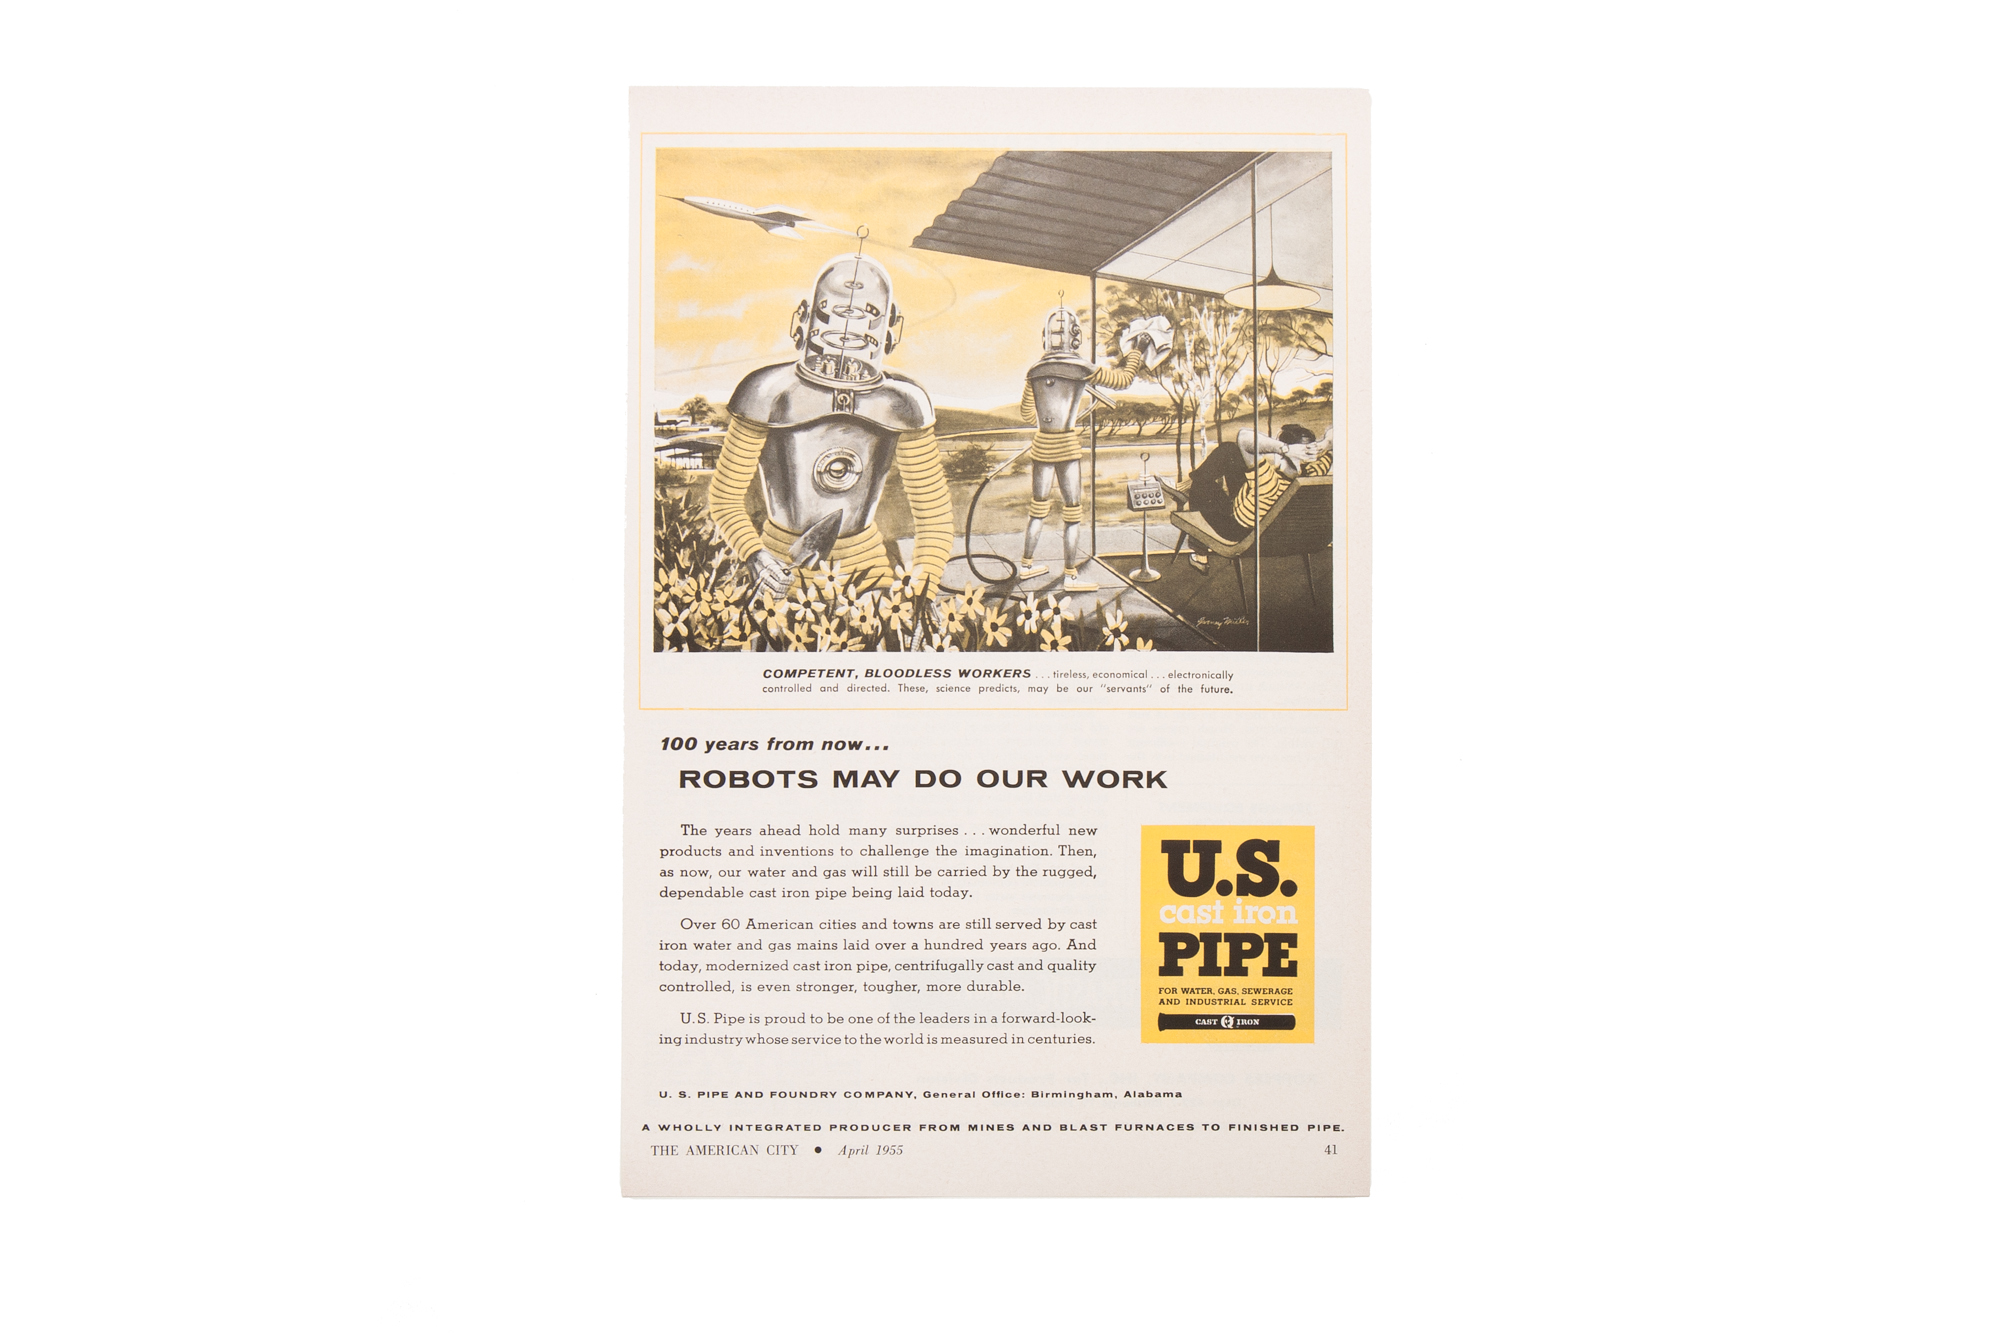 Magazine Advertisement – US Pipe (The American City 1955)